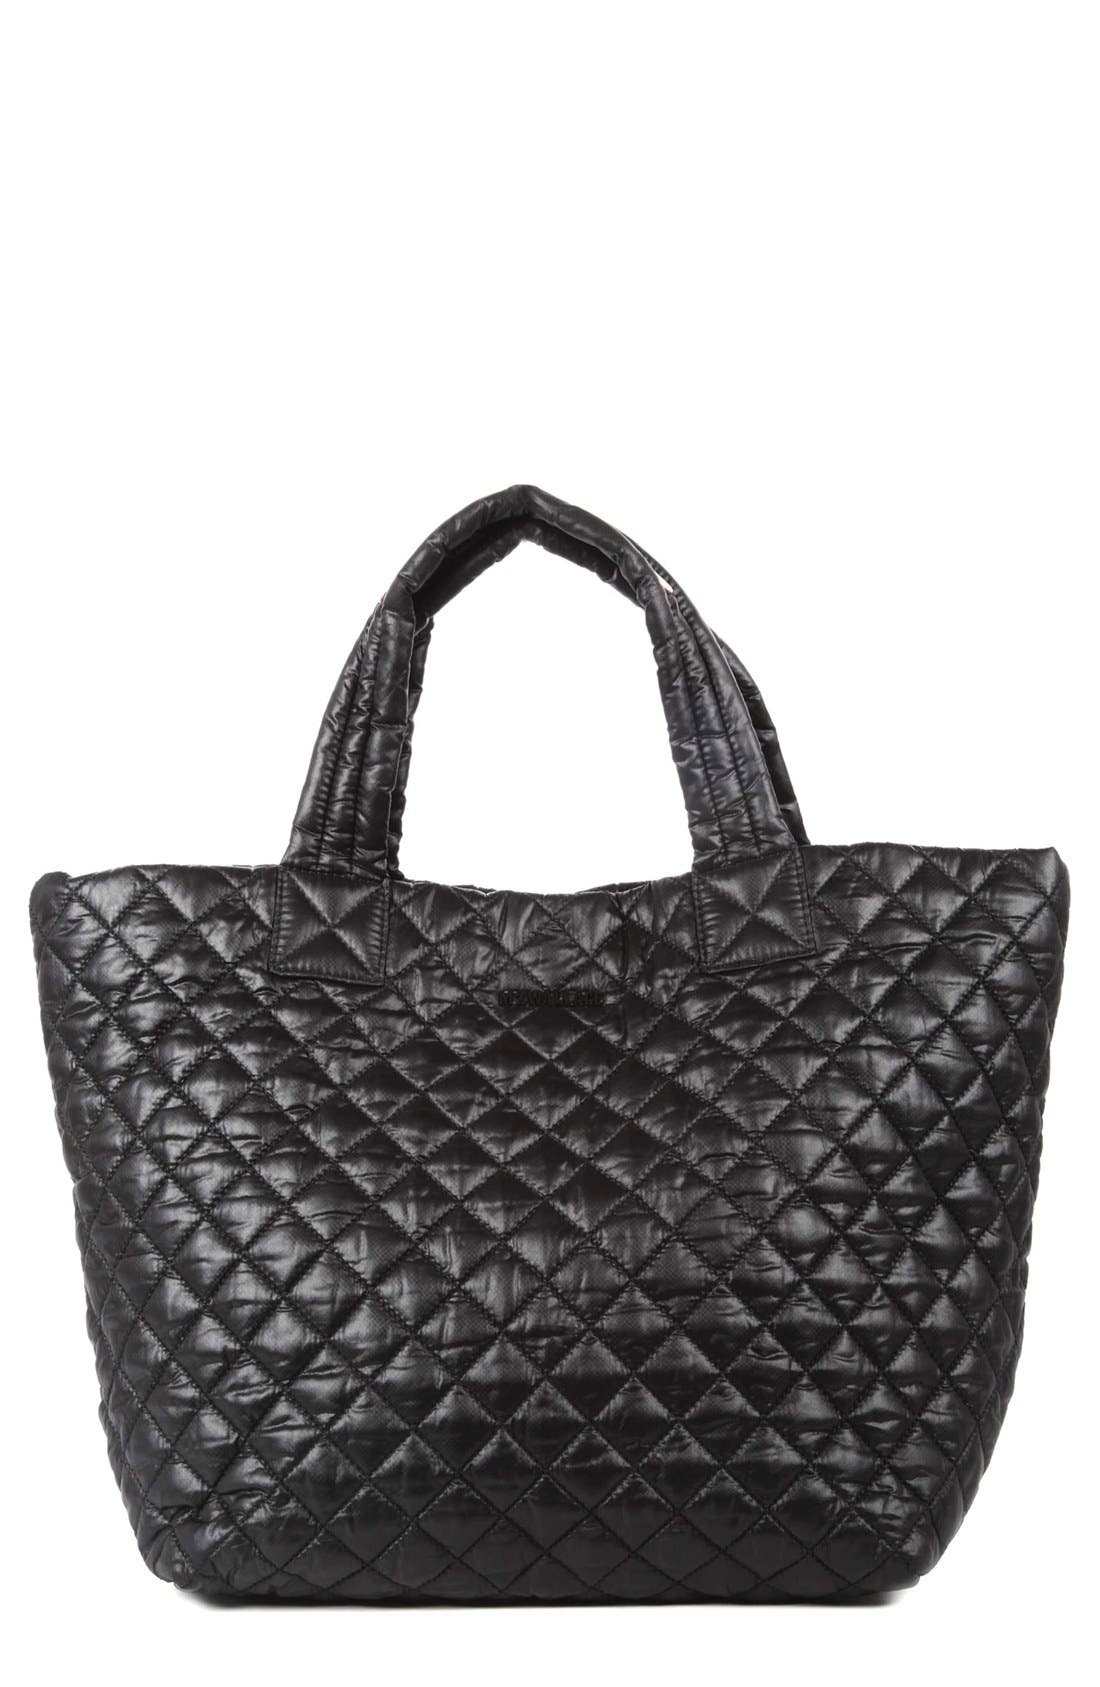 Alternate Image 1 Selected - MZ Wallace 'Small Metro' Quilted Oxford Nylon Tote